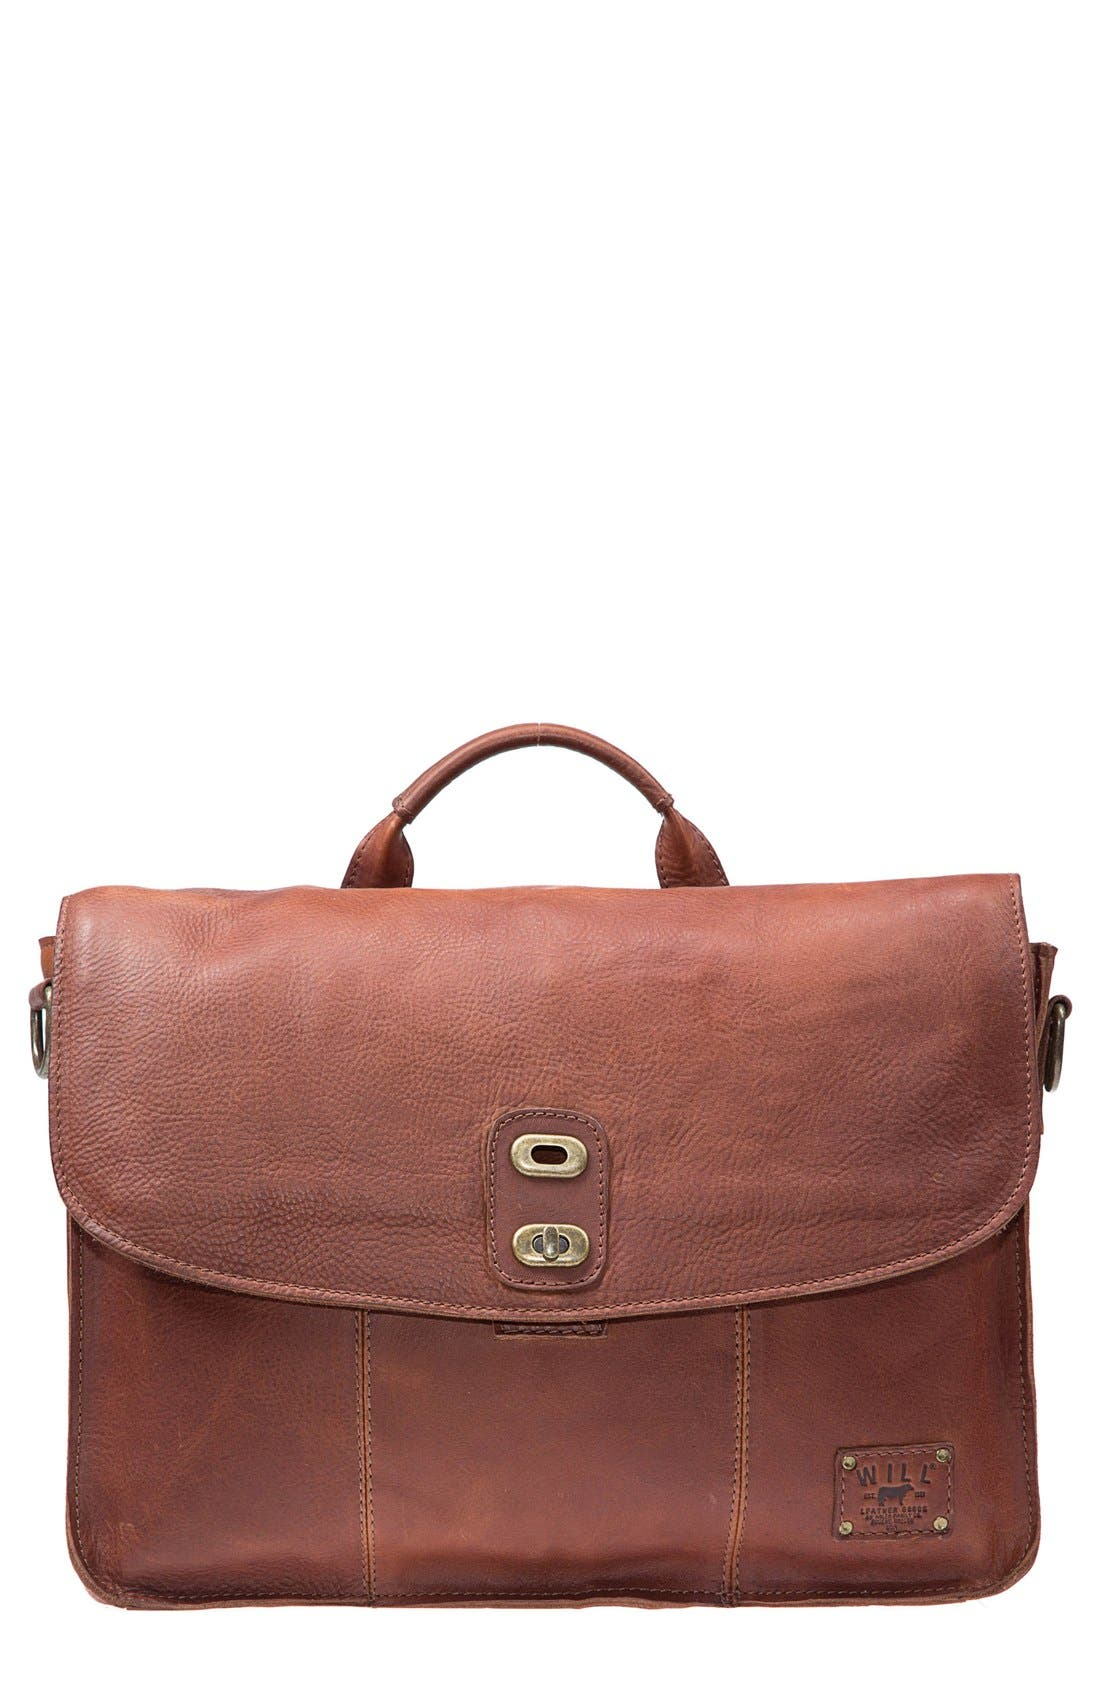 'Kent' Messenger Bag,                             Main thumbnail 1, color,                             231